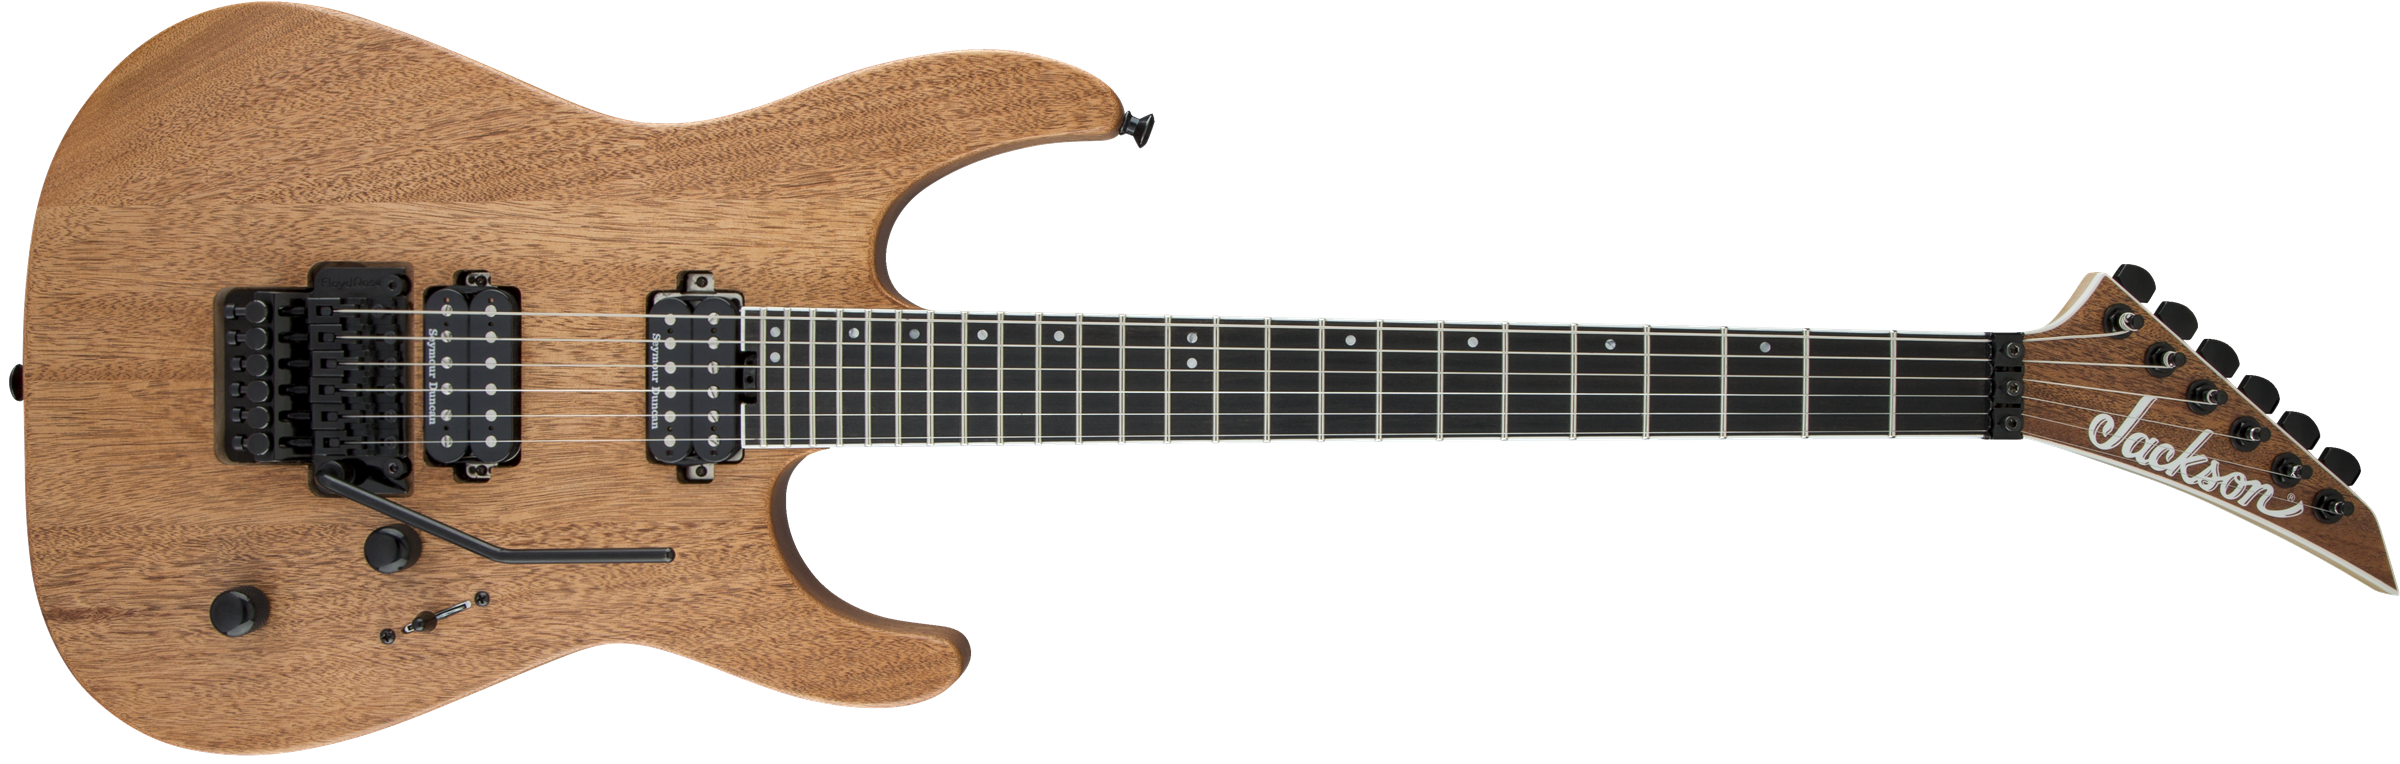 Jackson Dk2 Fs Wiring Diagram Electrical Diagrams Js22 7 Wire Dinky Pro Series Okoume Ebony Fingerboard Natural Taylor